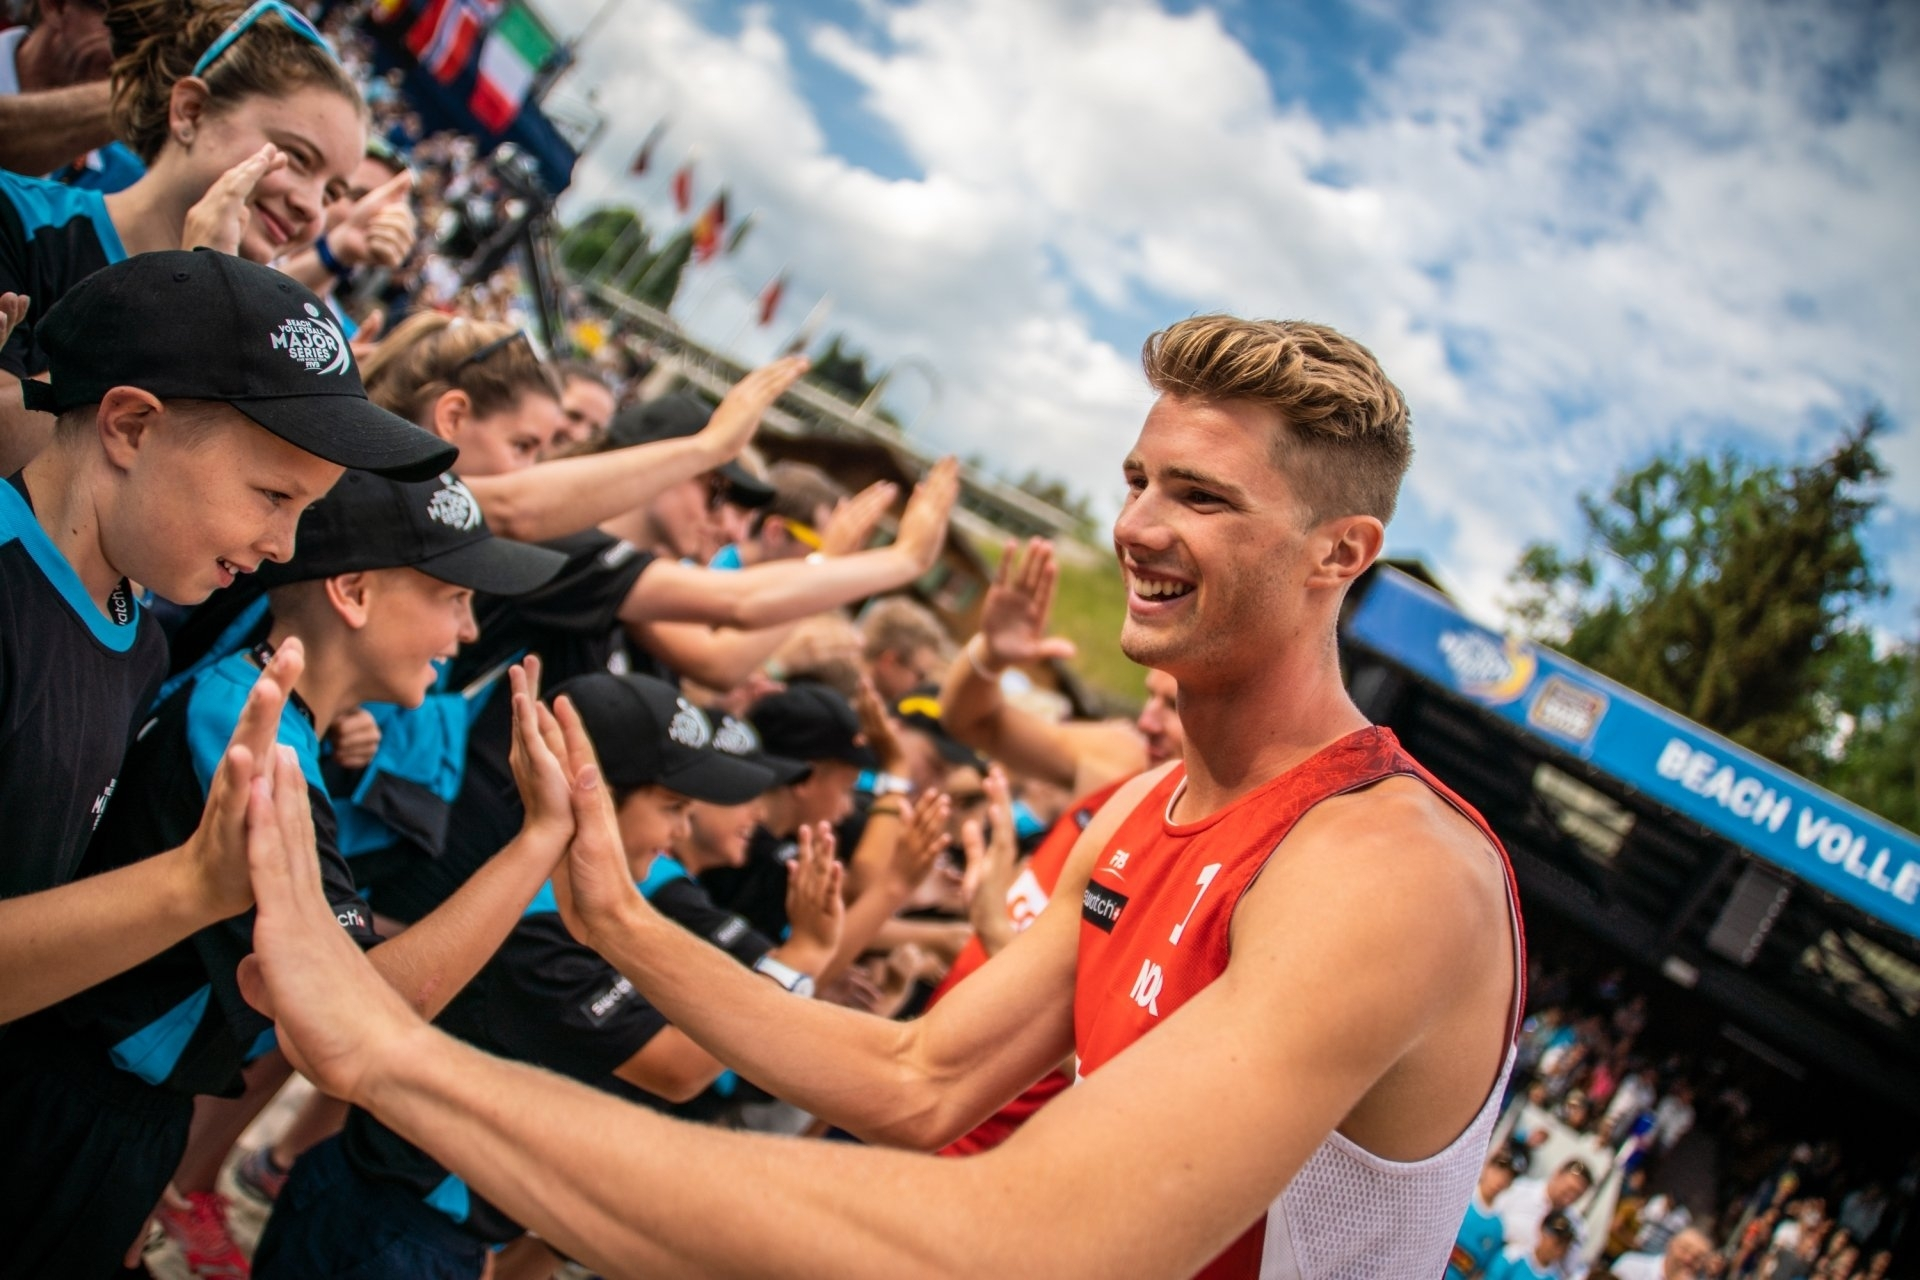 Anders Mol high-fives volunteers after winning his first Major gold in Gstaad in 2018